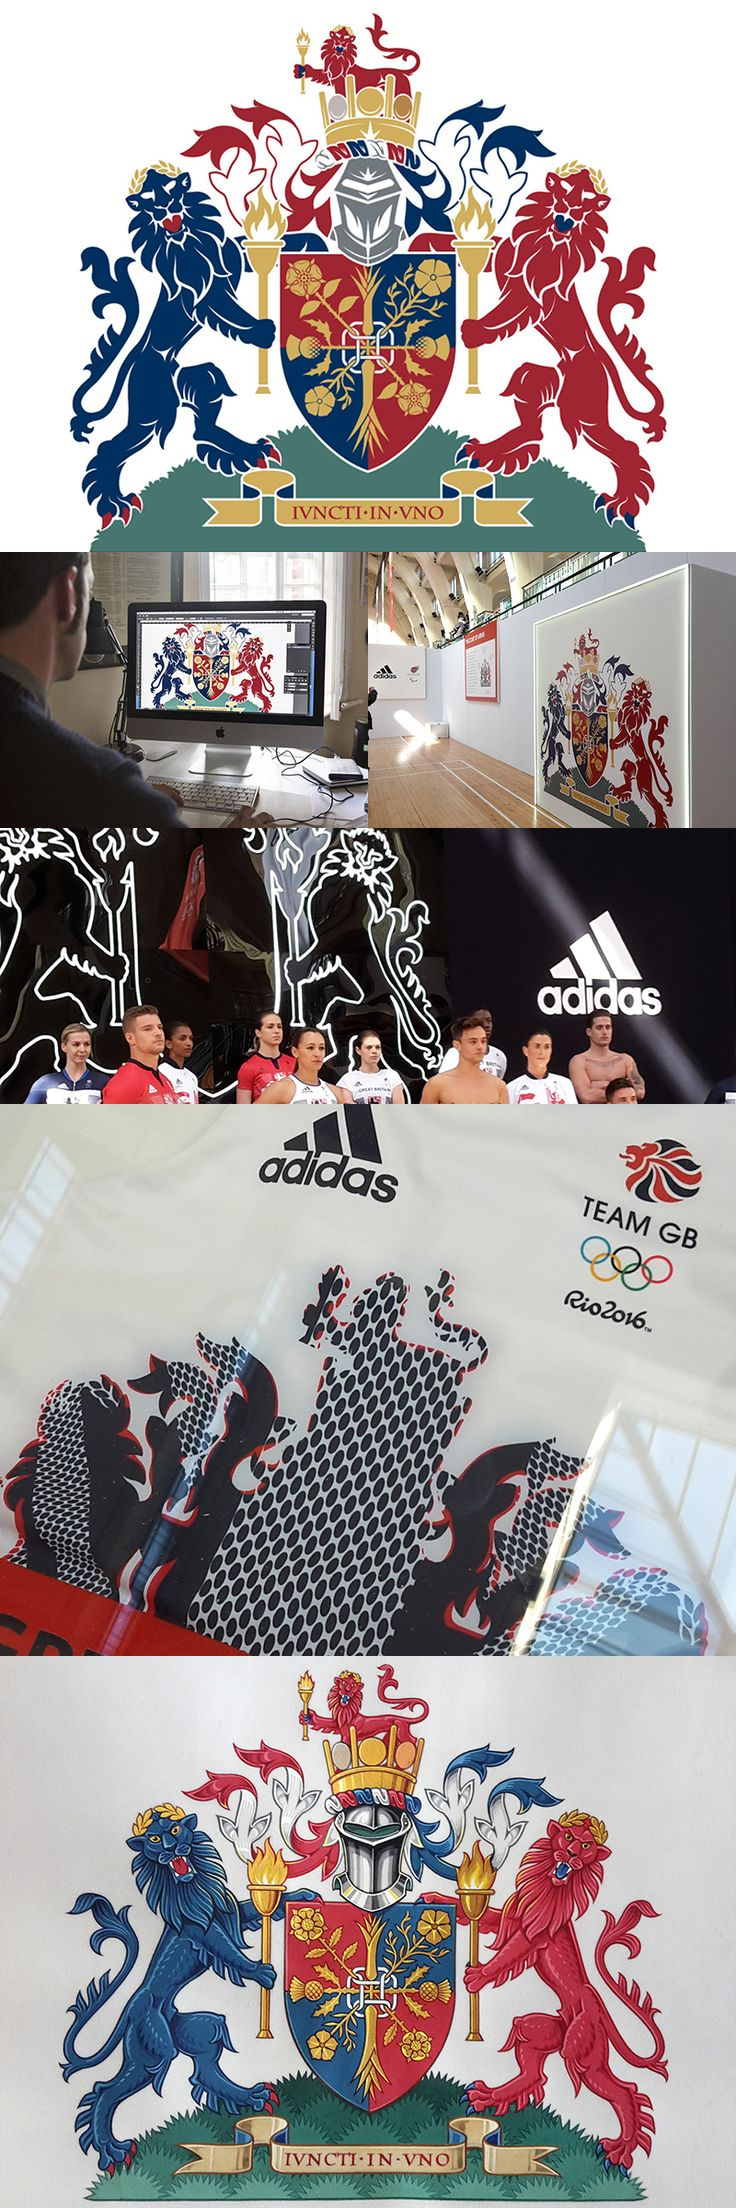 Digital heraldry design for the Team GB kit for the Rio 2016 Olympics